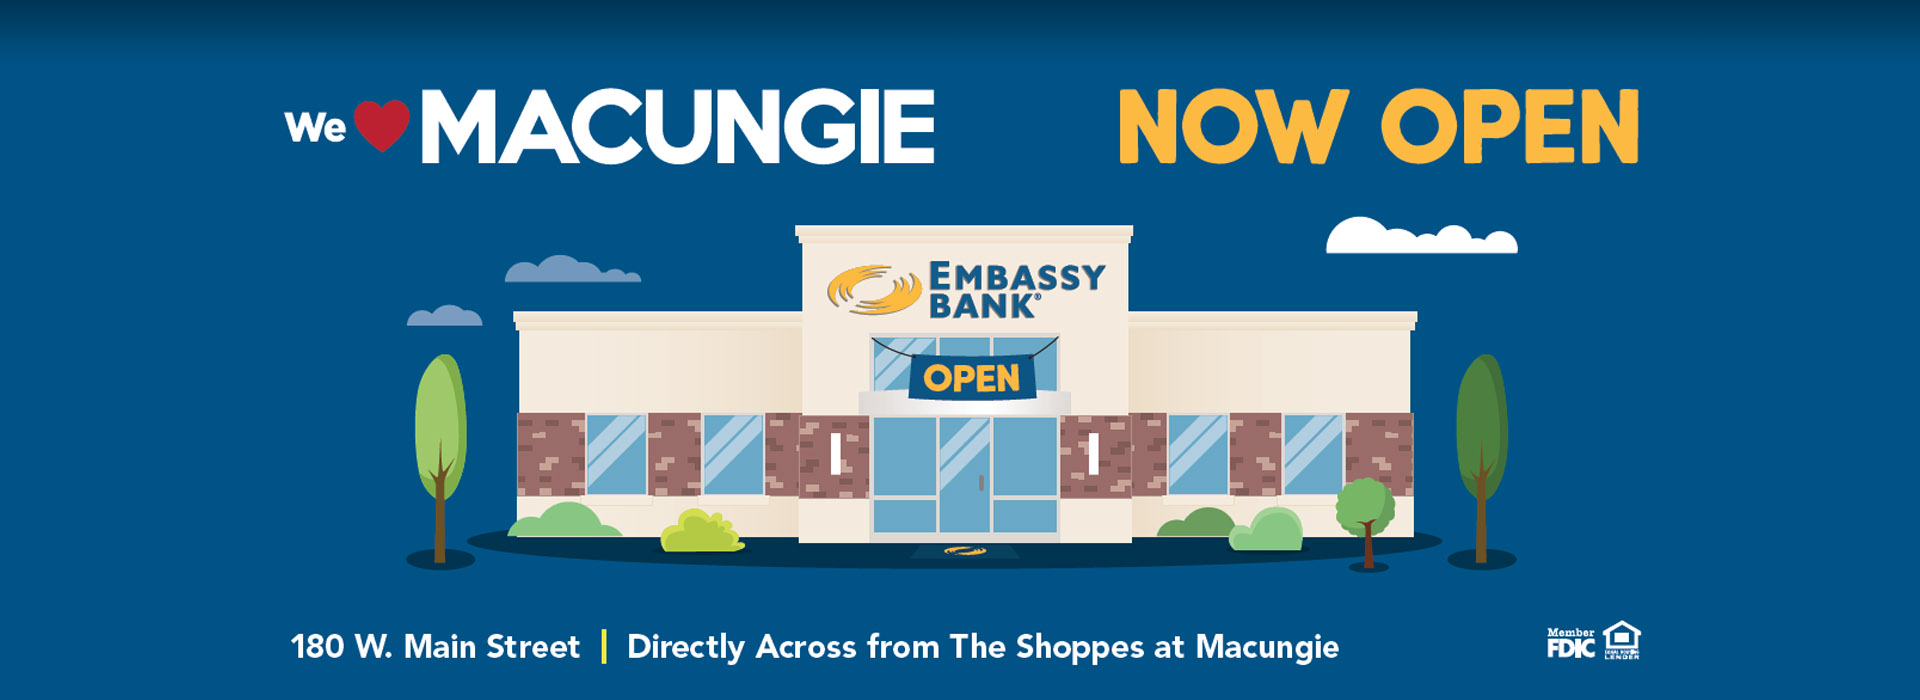 Macungie Now Open!